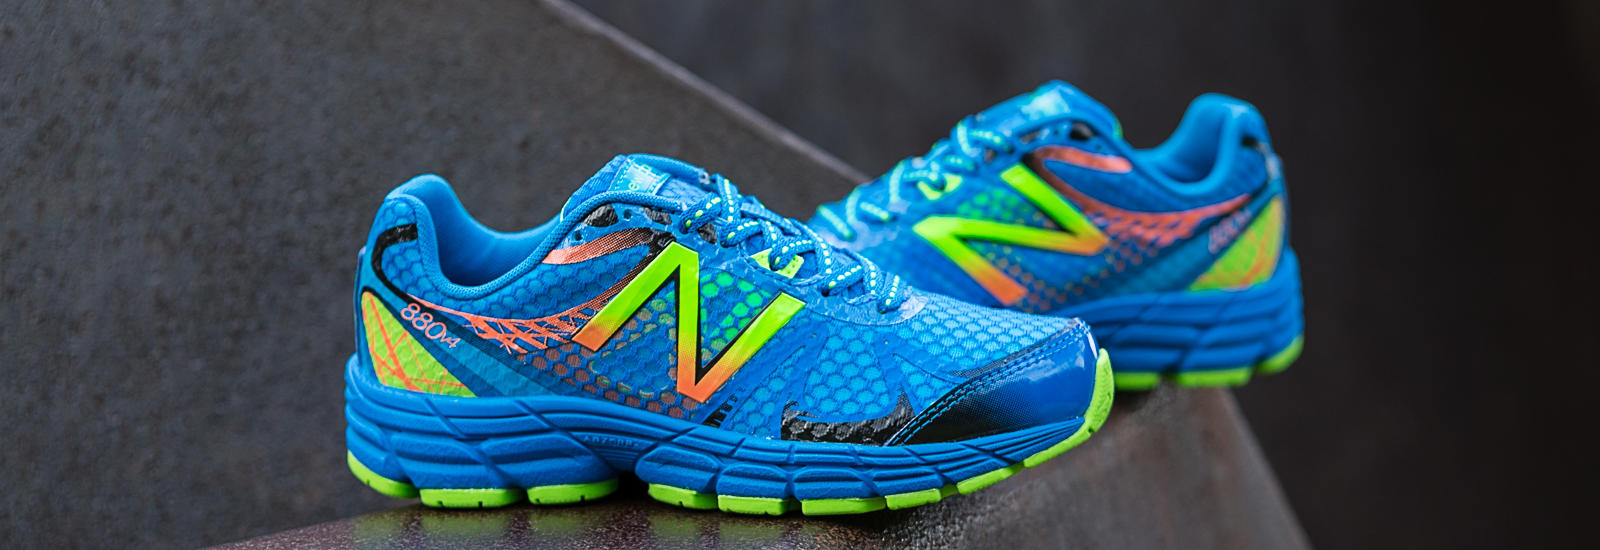 New Balance 880v4, Blue with Green